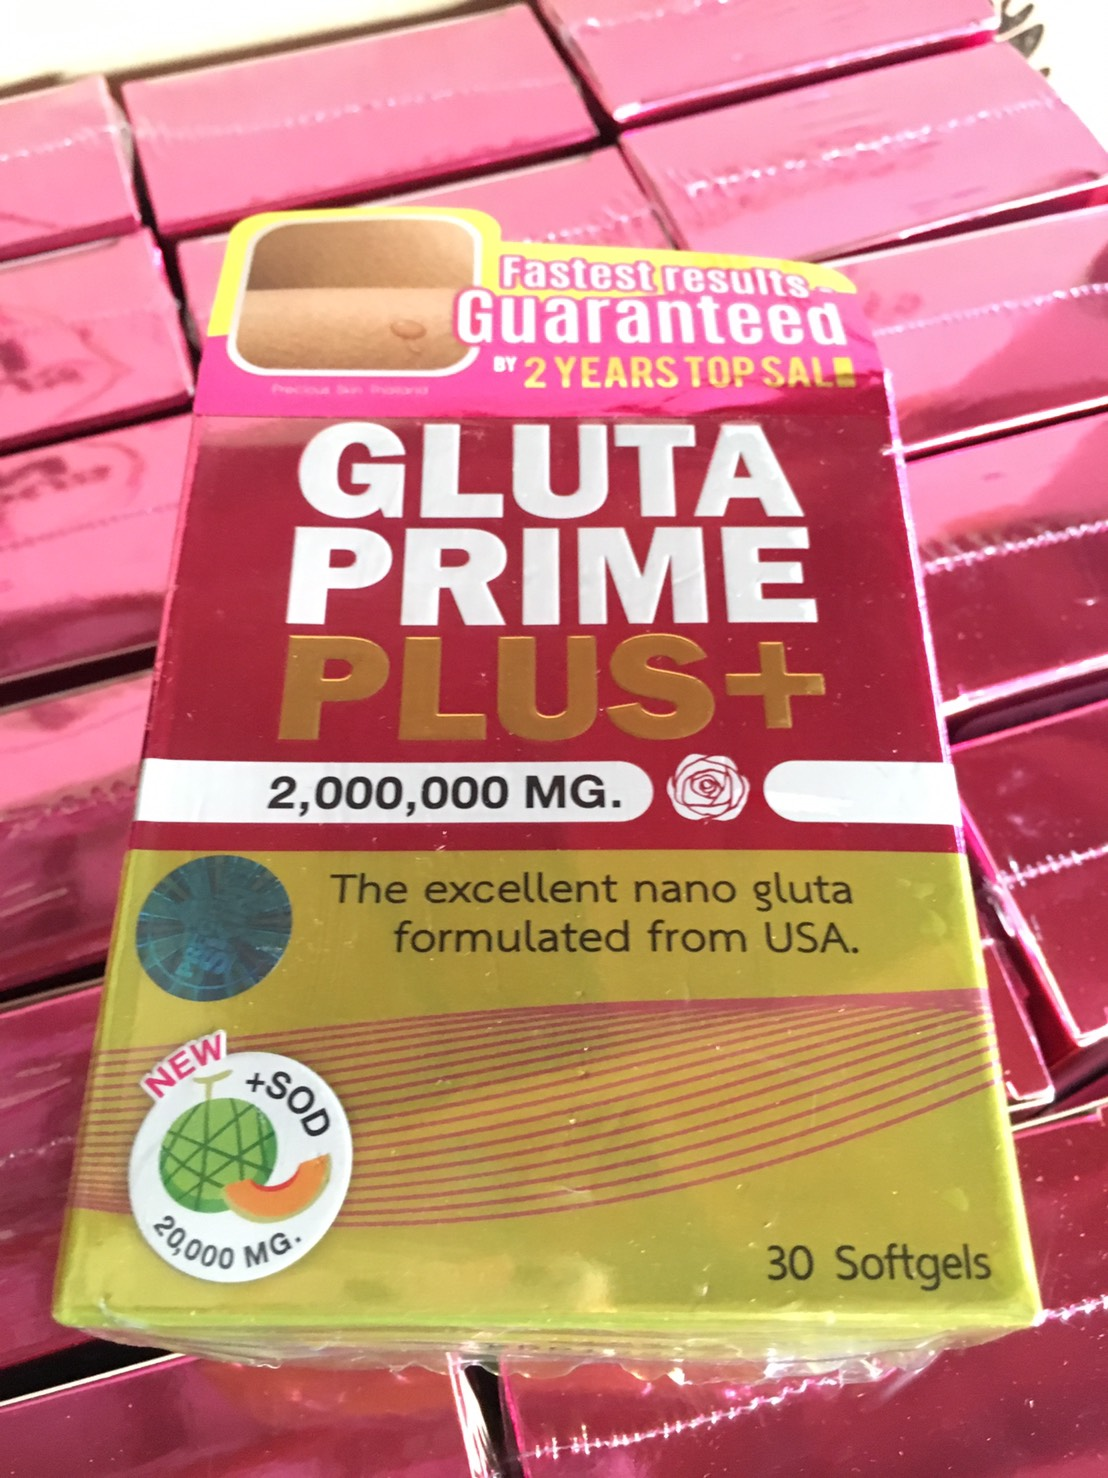 NEW 30 PILLS SOFT GEL GLUTA PRIME PLUS 2,000,000mg NANO